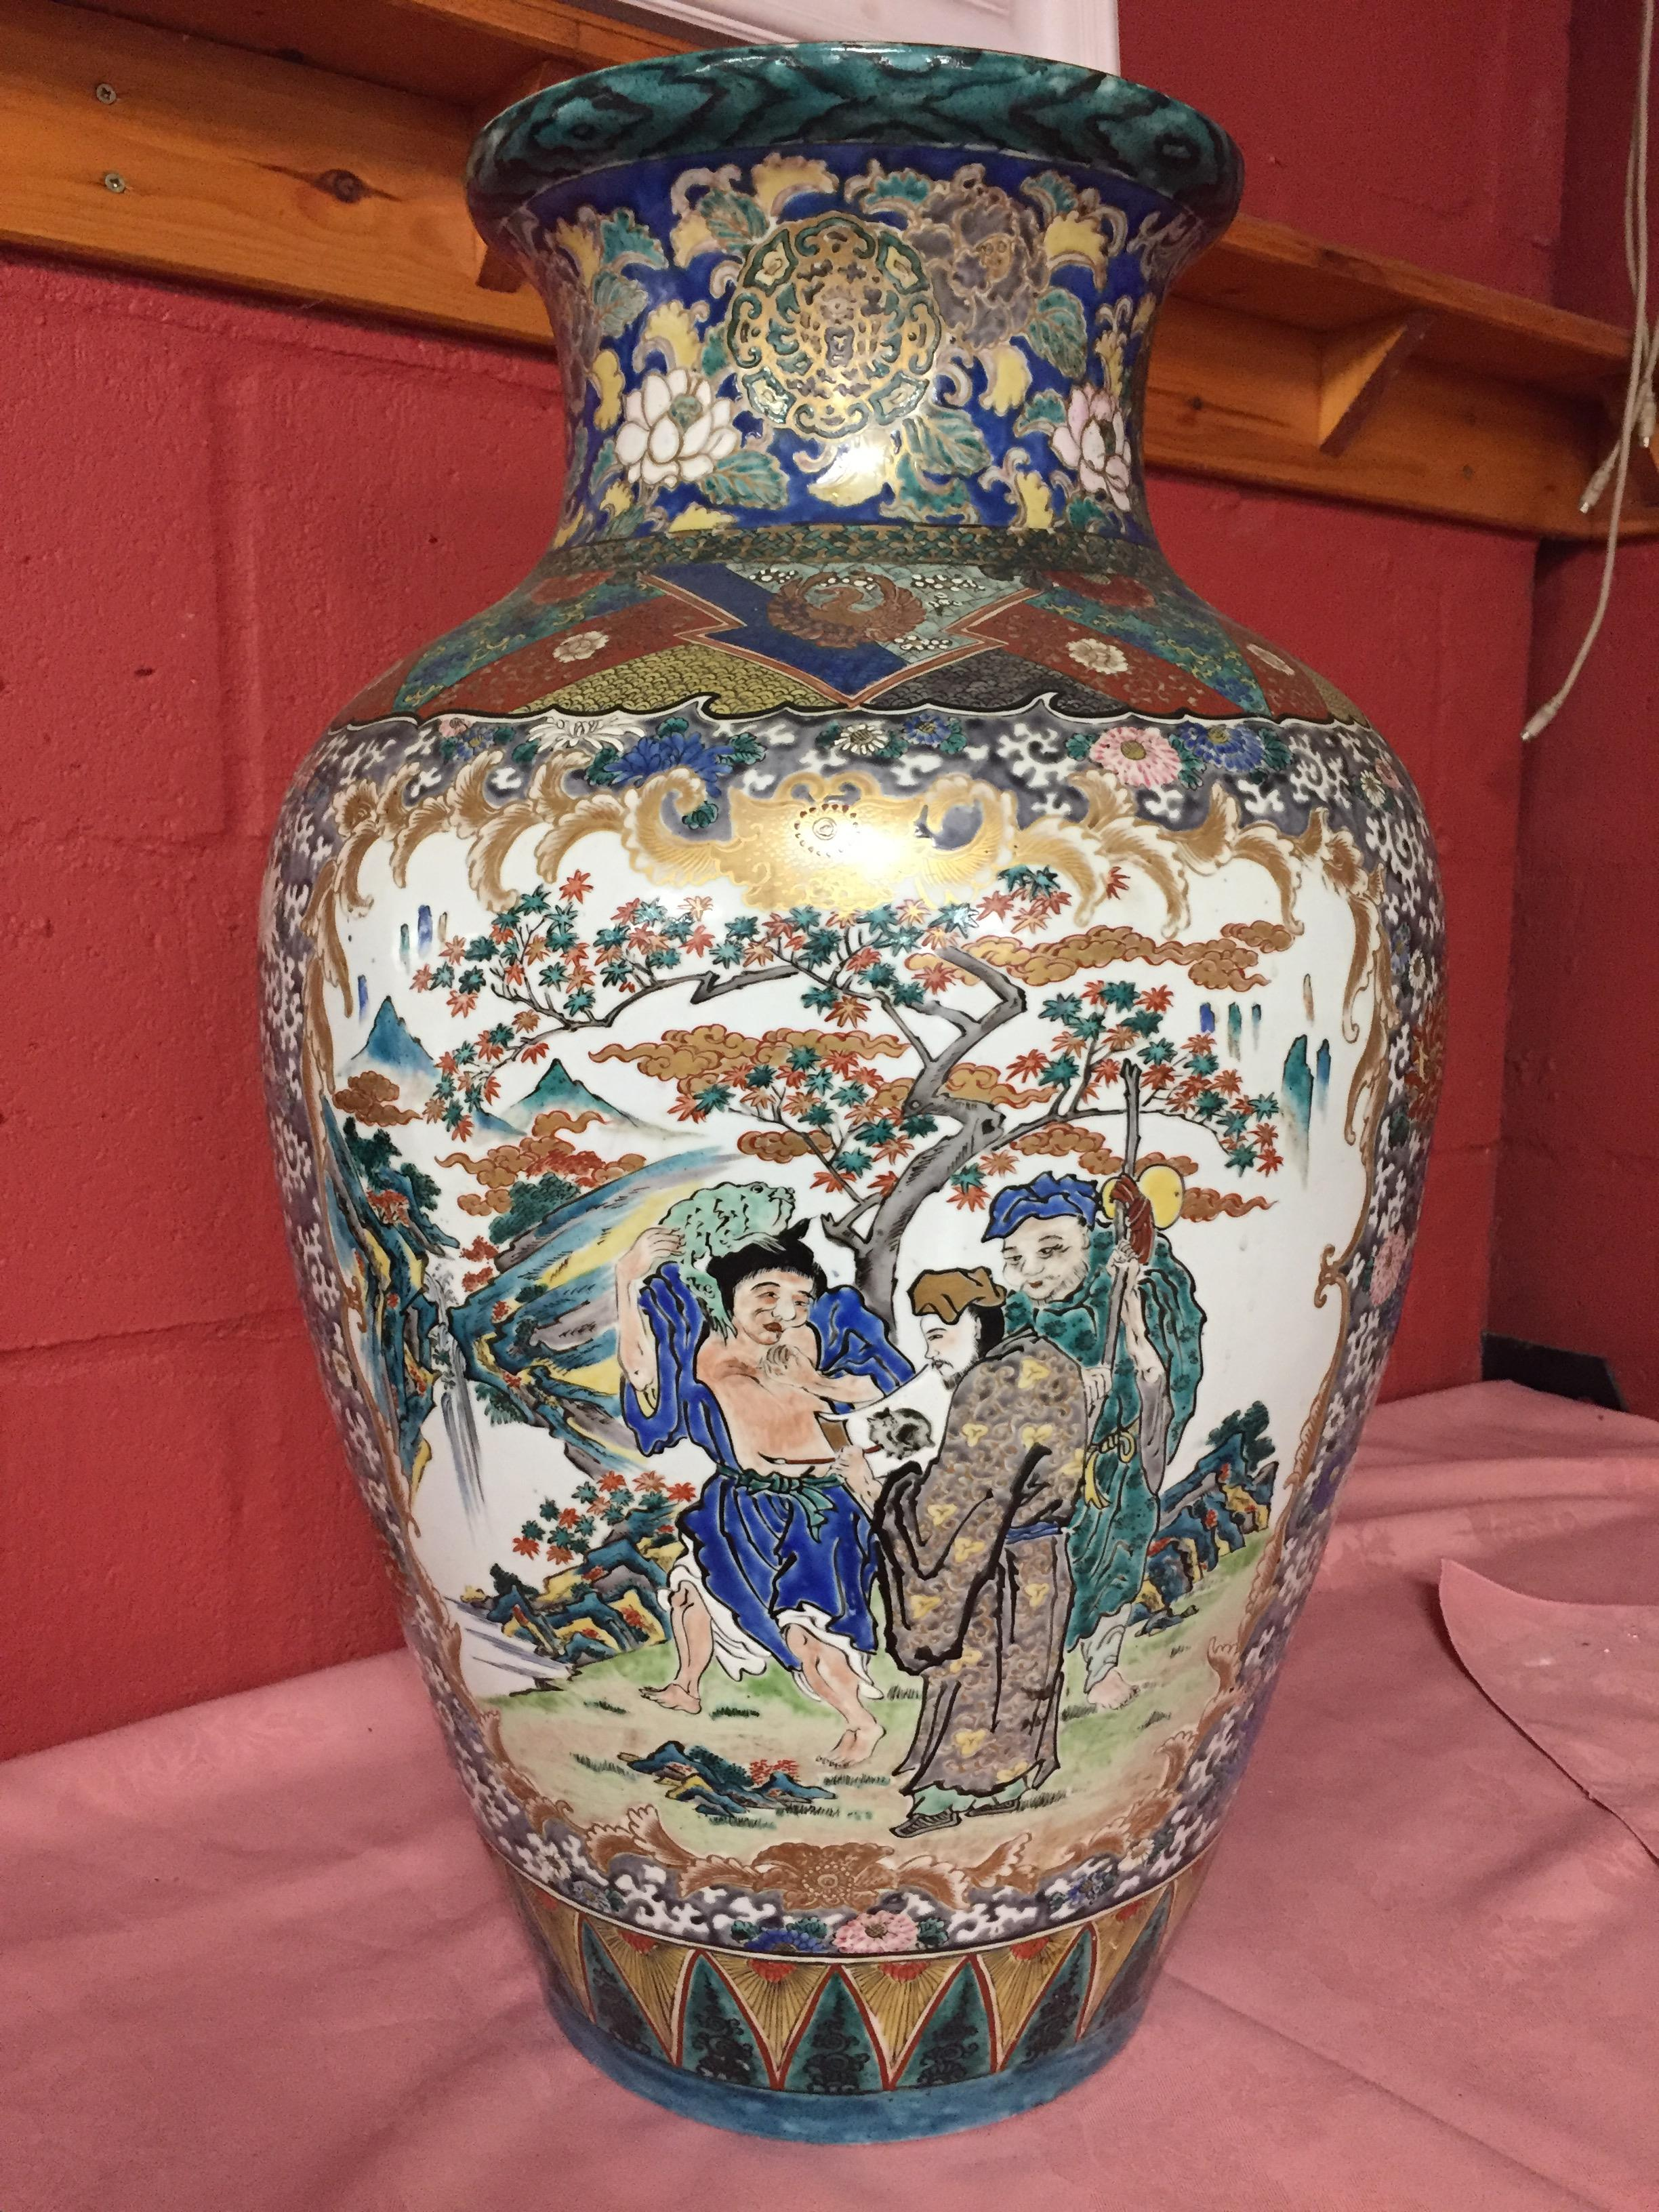 Lot 47 - LARGE POLYCHROME ORIENTAL VASE DECORATED WITH MOUNTAINOUS SCENES PANEL 65 CM